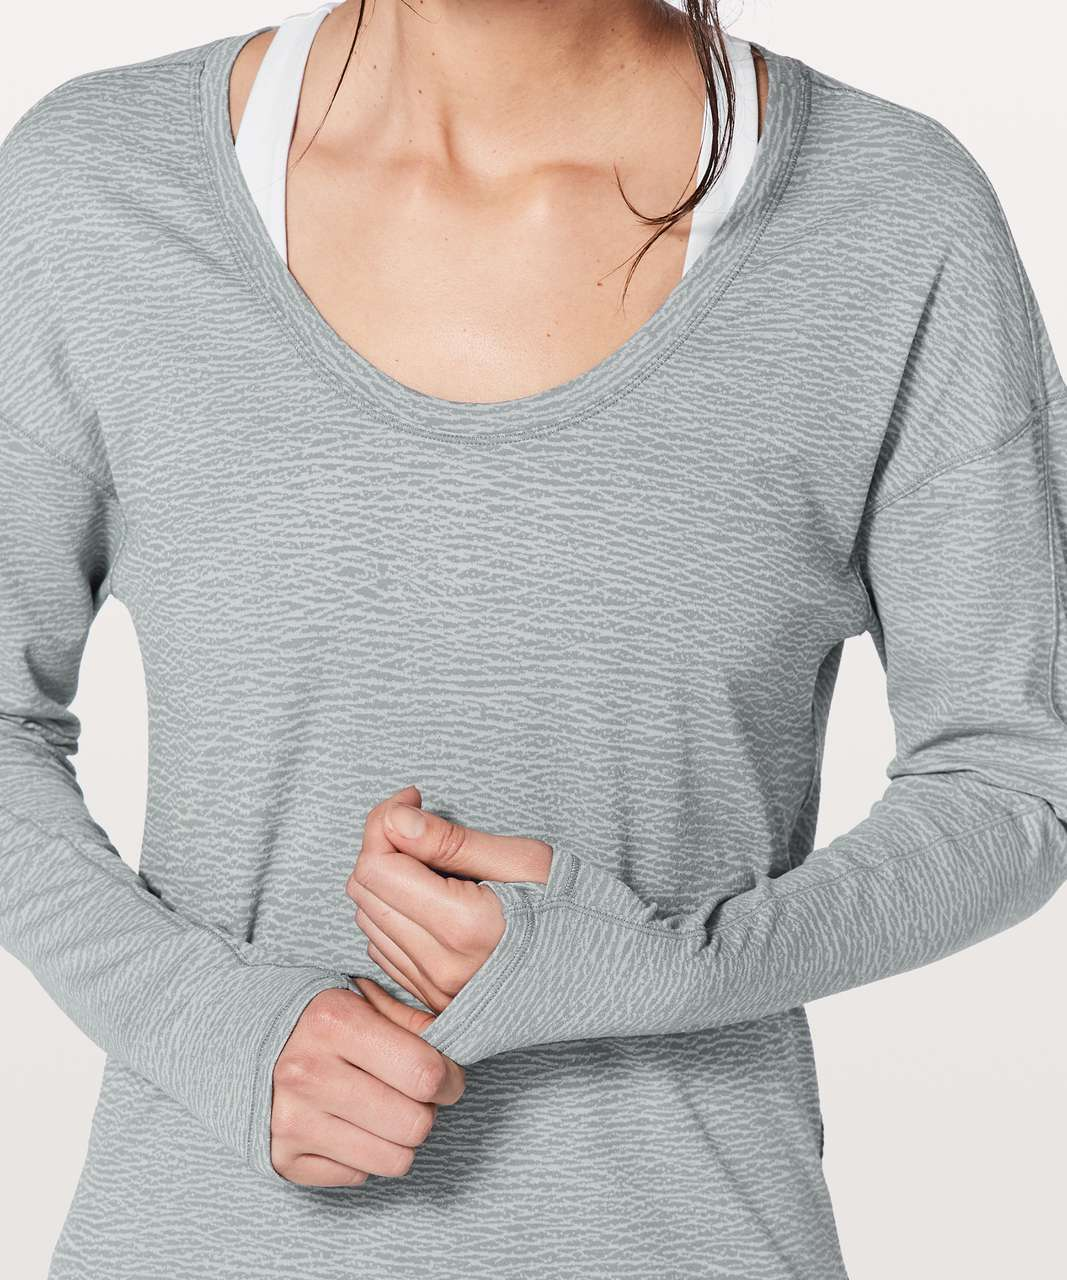 Lululemon Meant To Move Long Sleeve - Sheer Luon Pebble Jacquard V2 Arctic Grey Ice Grey